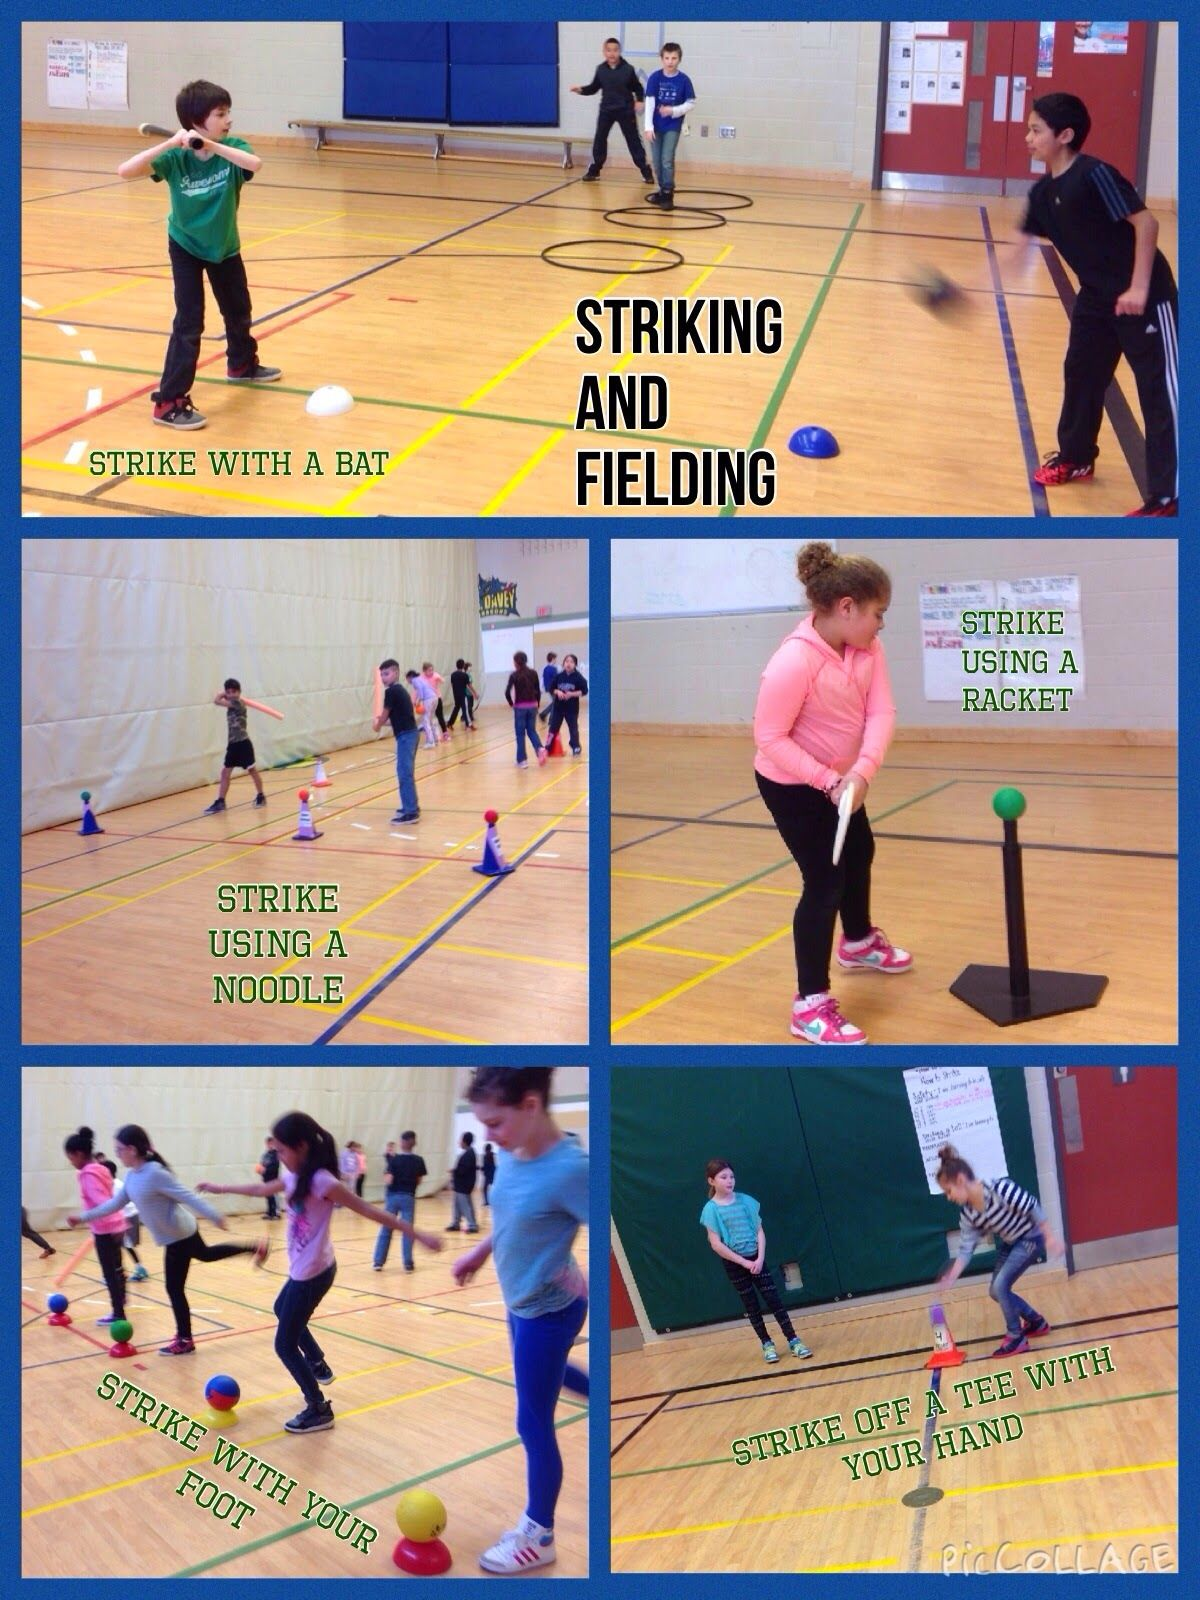 Striking And Fielding Pic Collage